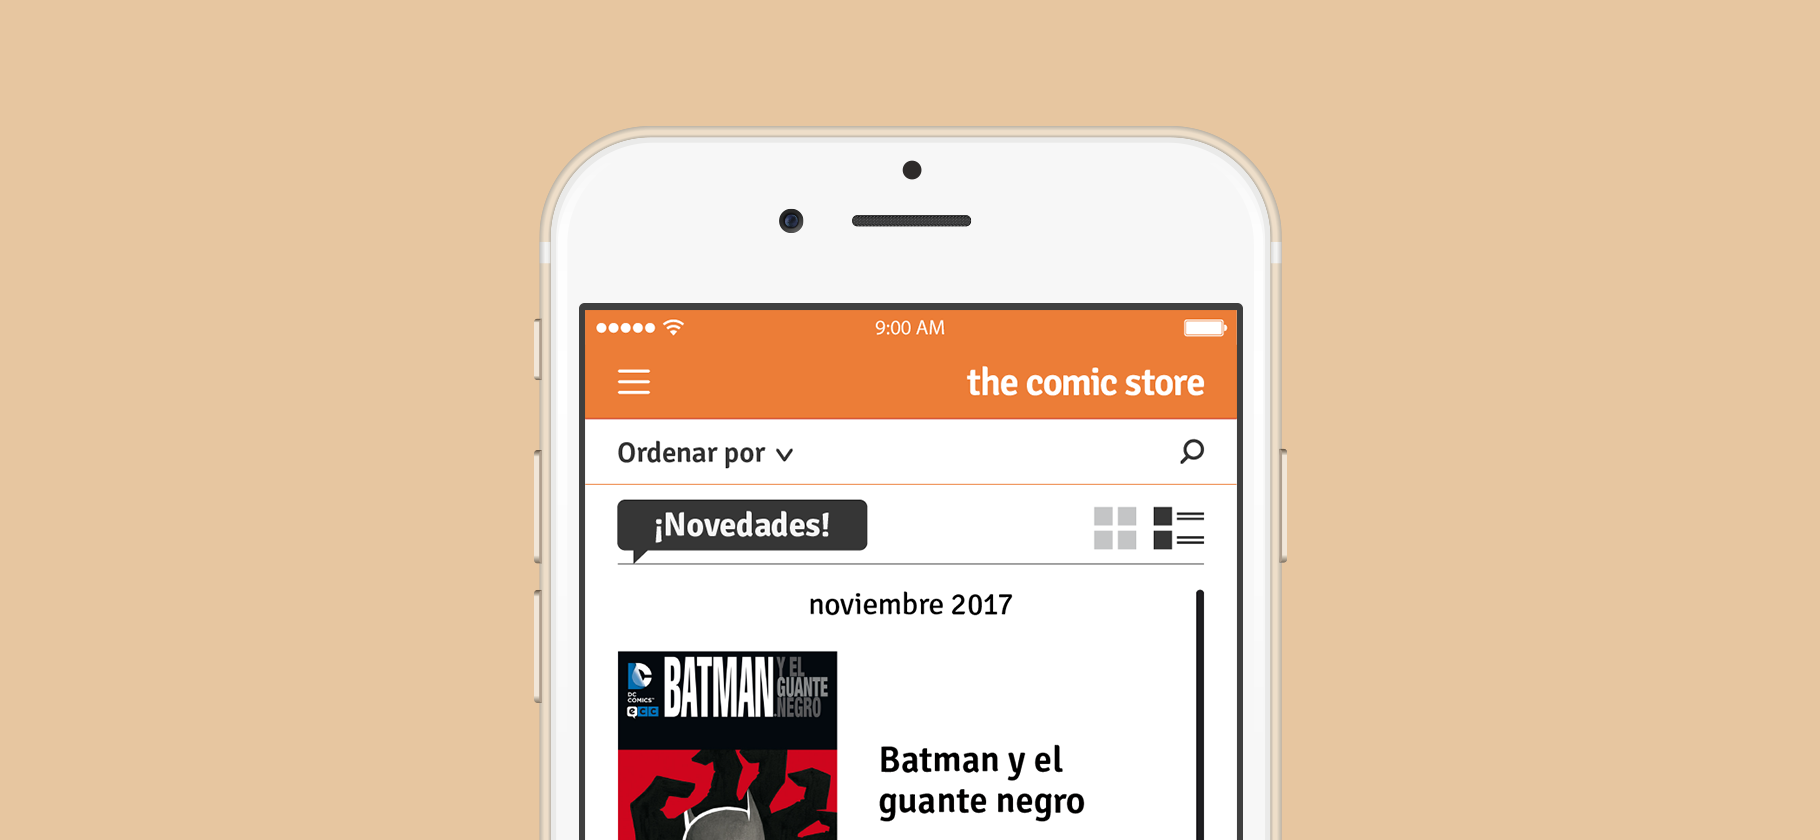 ui design the comic store user interface